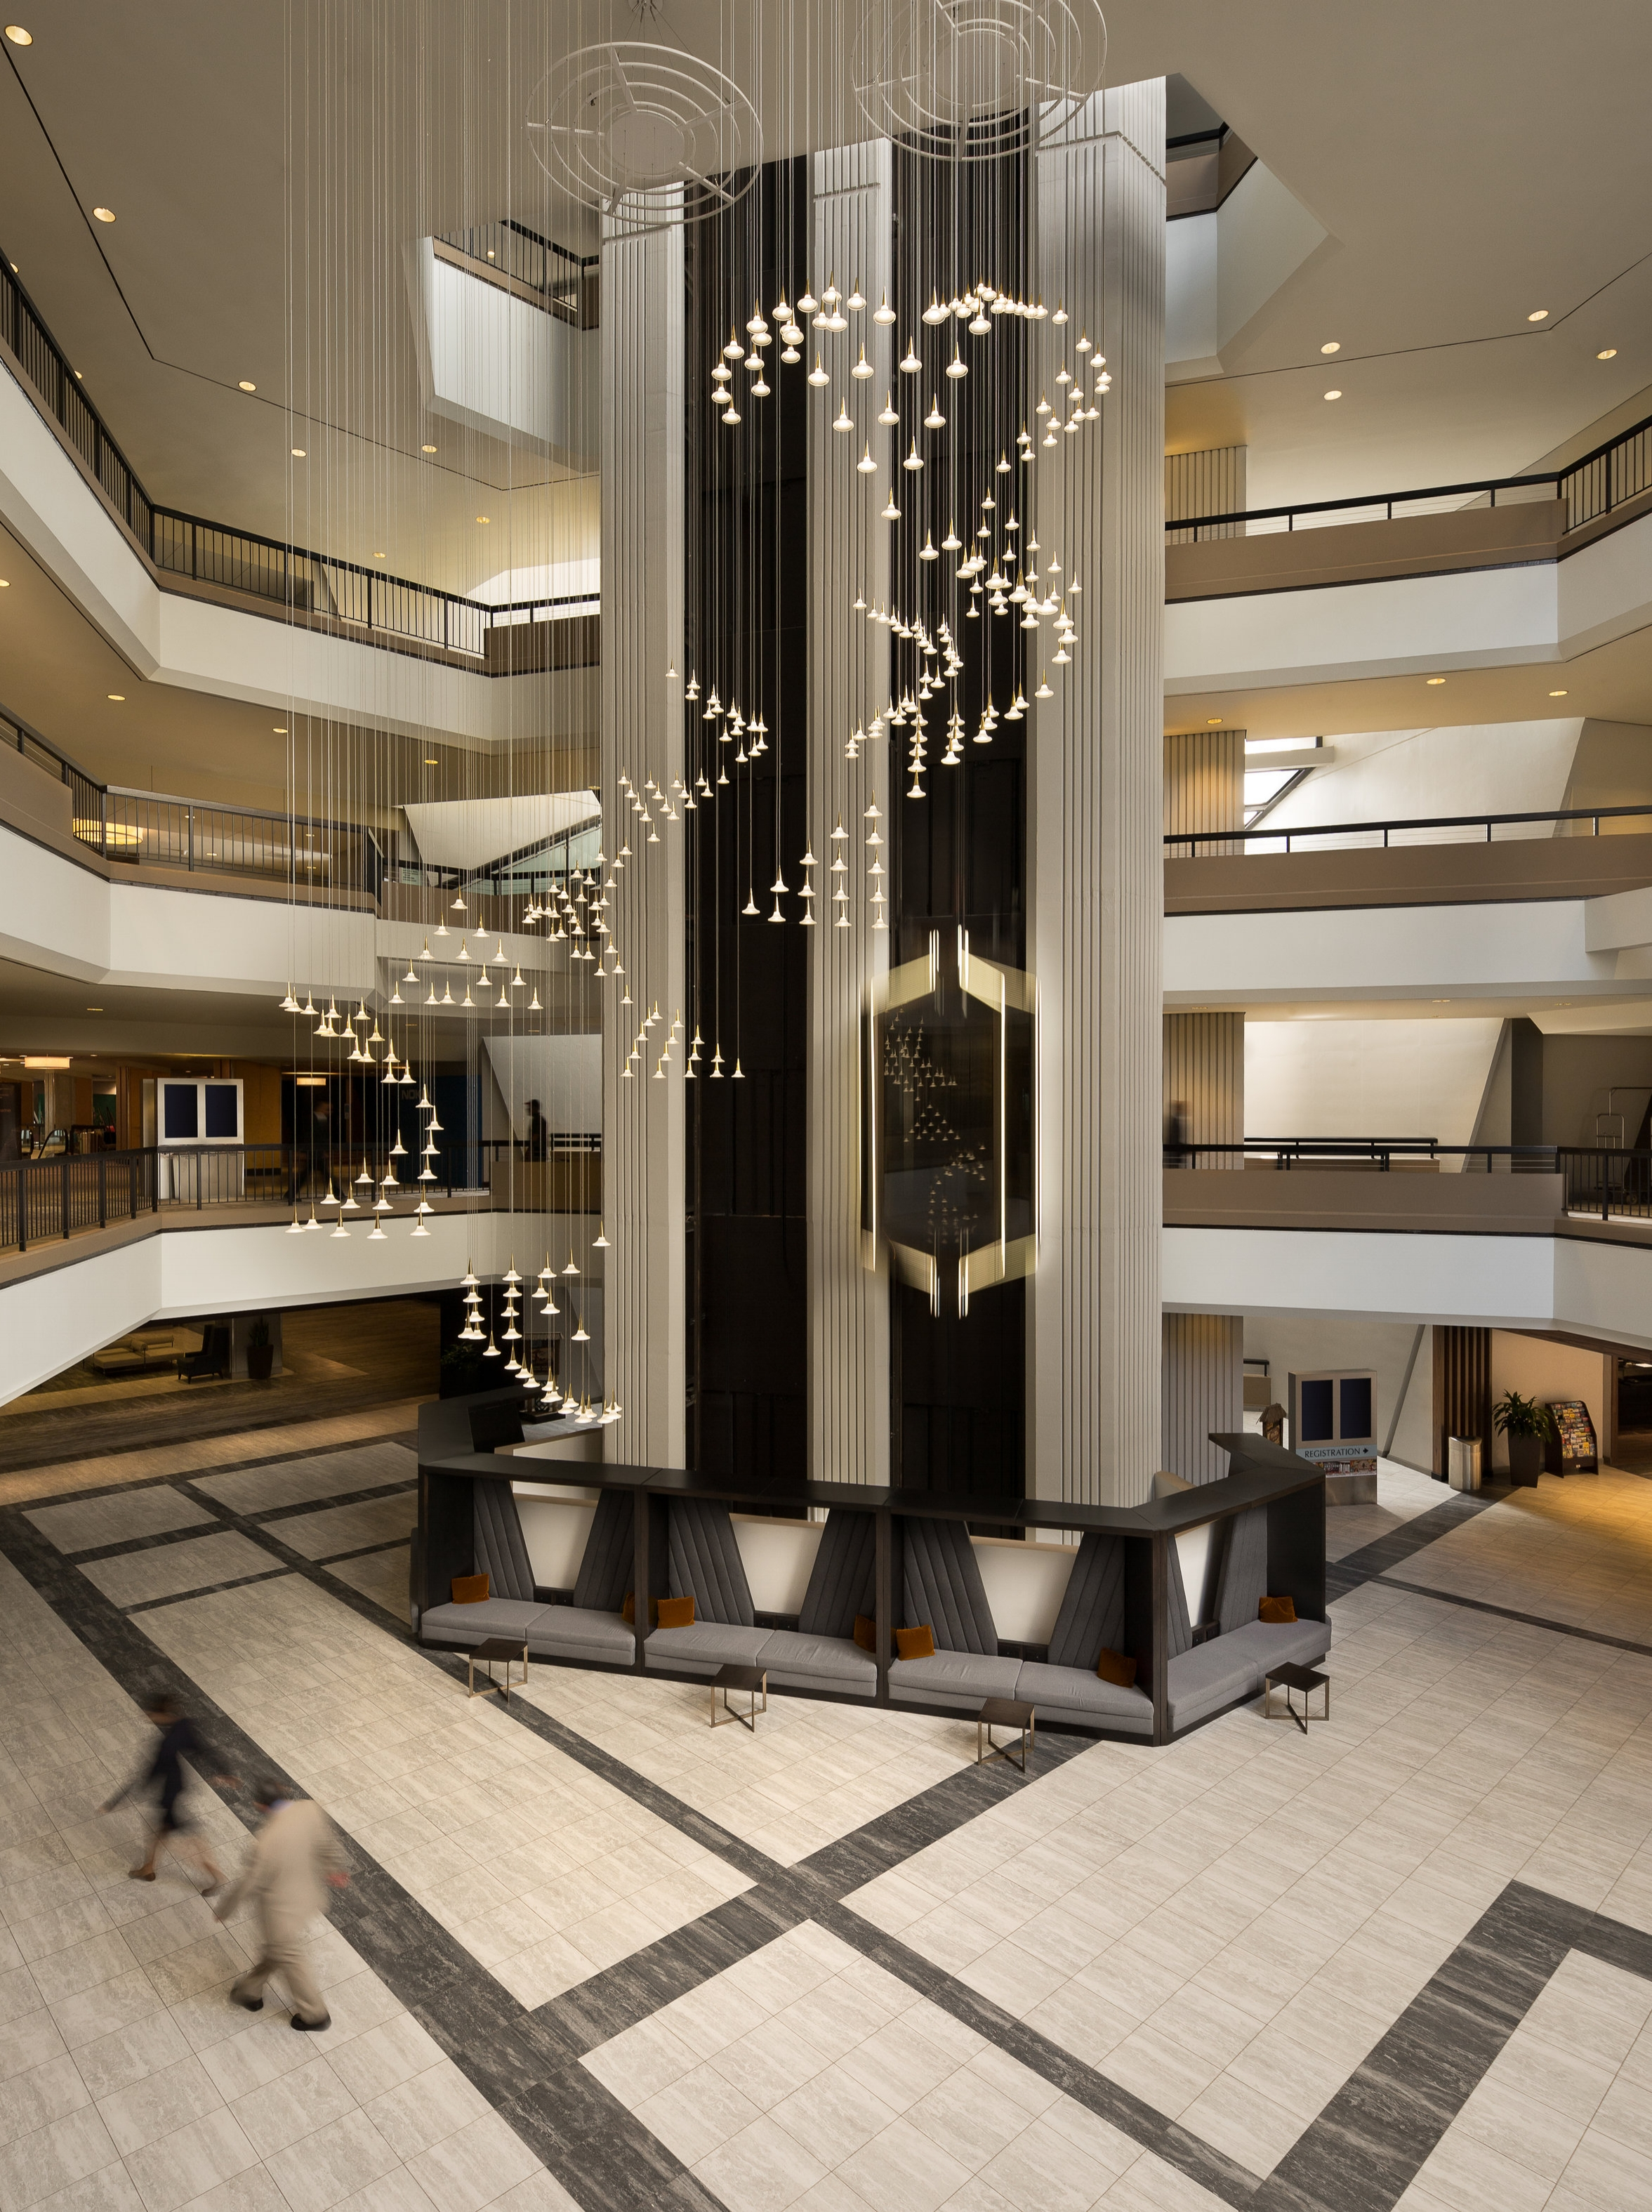 Atlanta Hilton Lobby for Lighting Company, Viso, Inc.